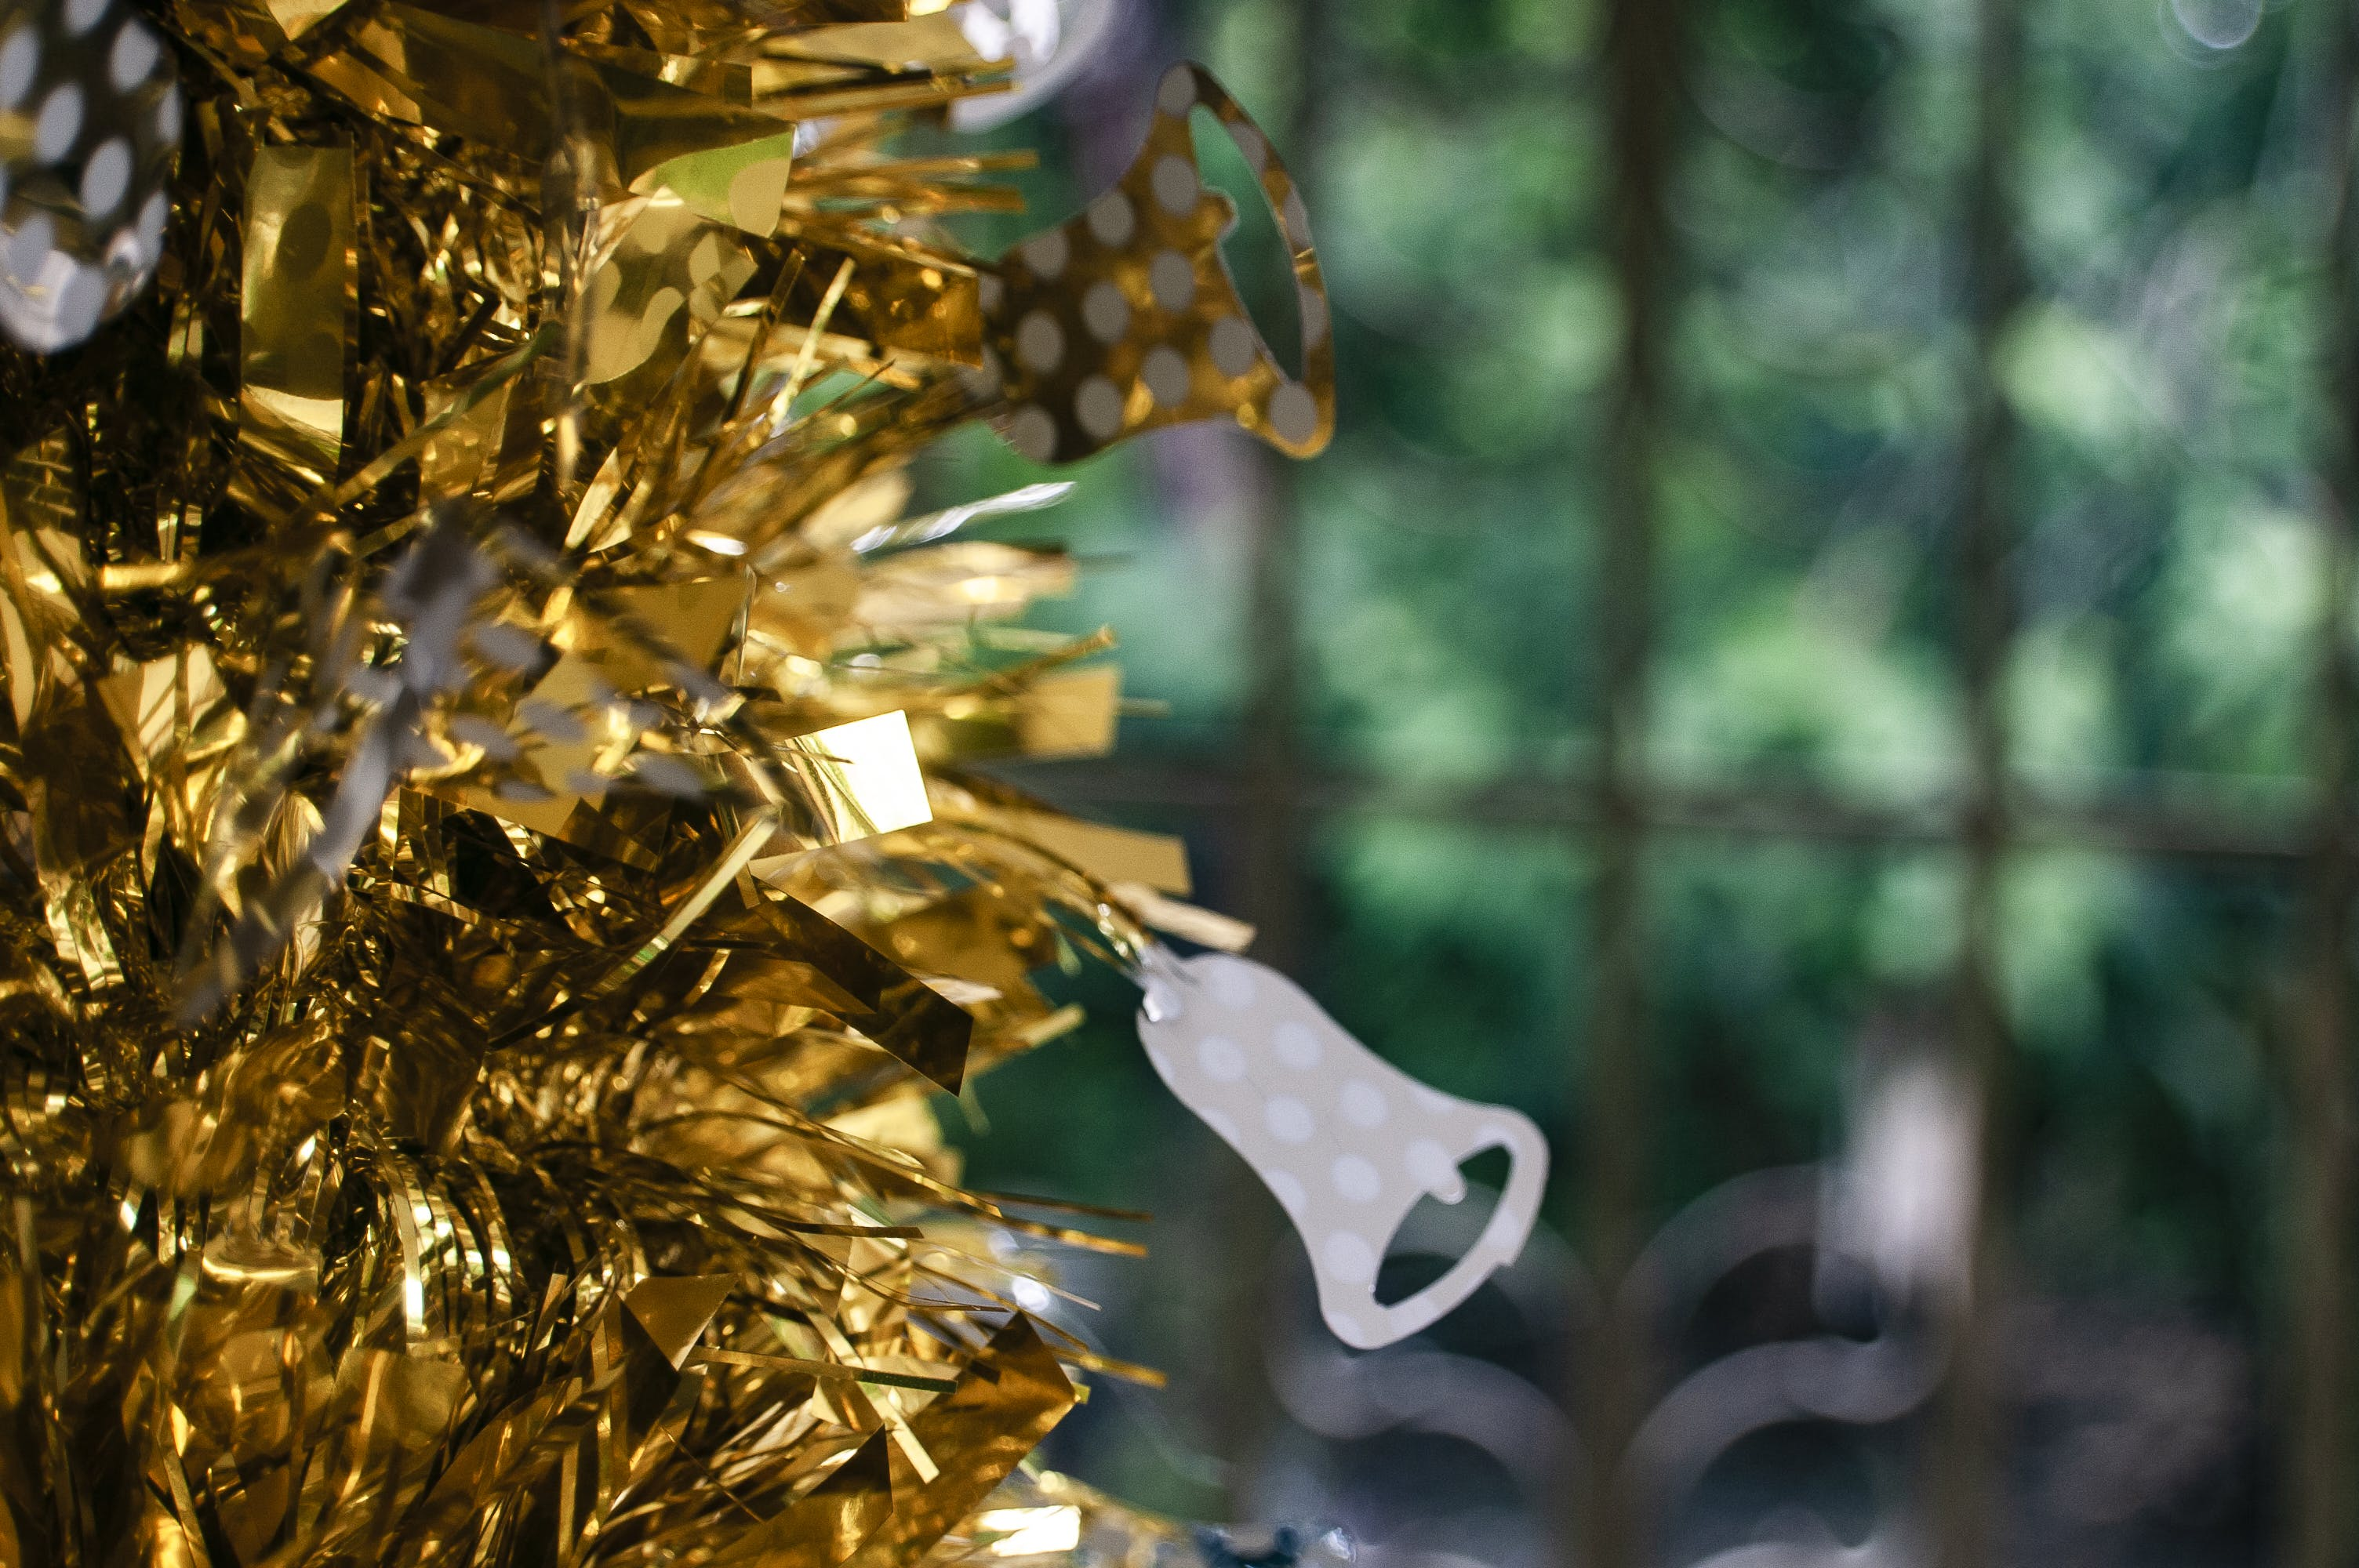 Gold Tinsel Decor With White Flower Ornament